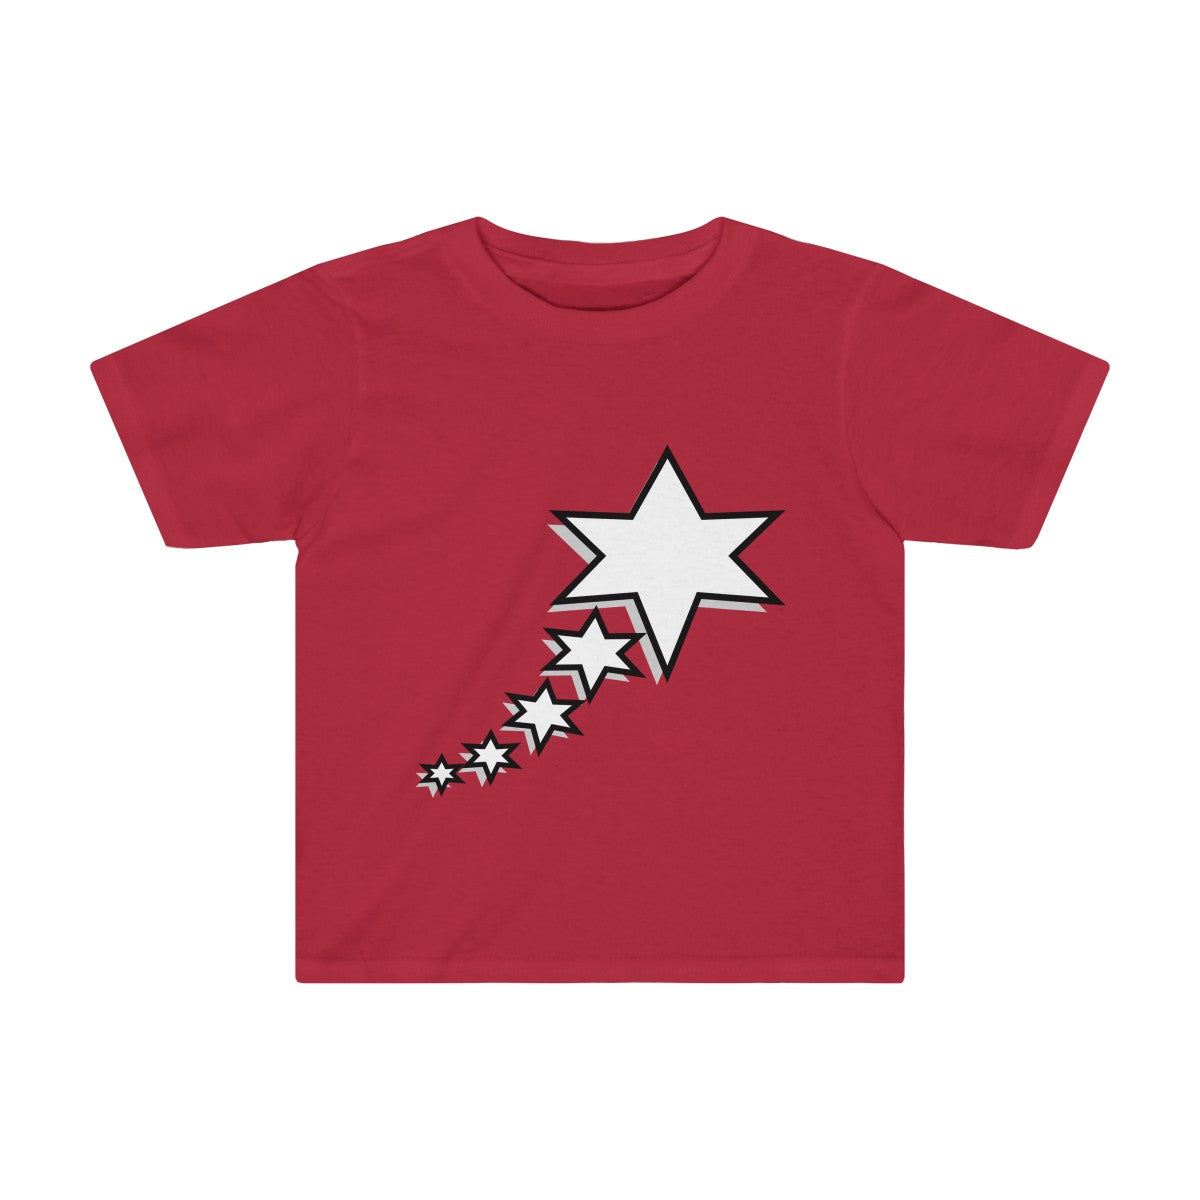 Kids Tee - 6 Points 5 Stars (White)